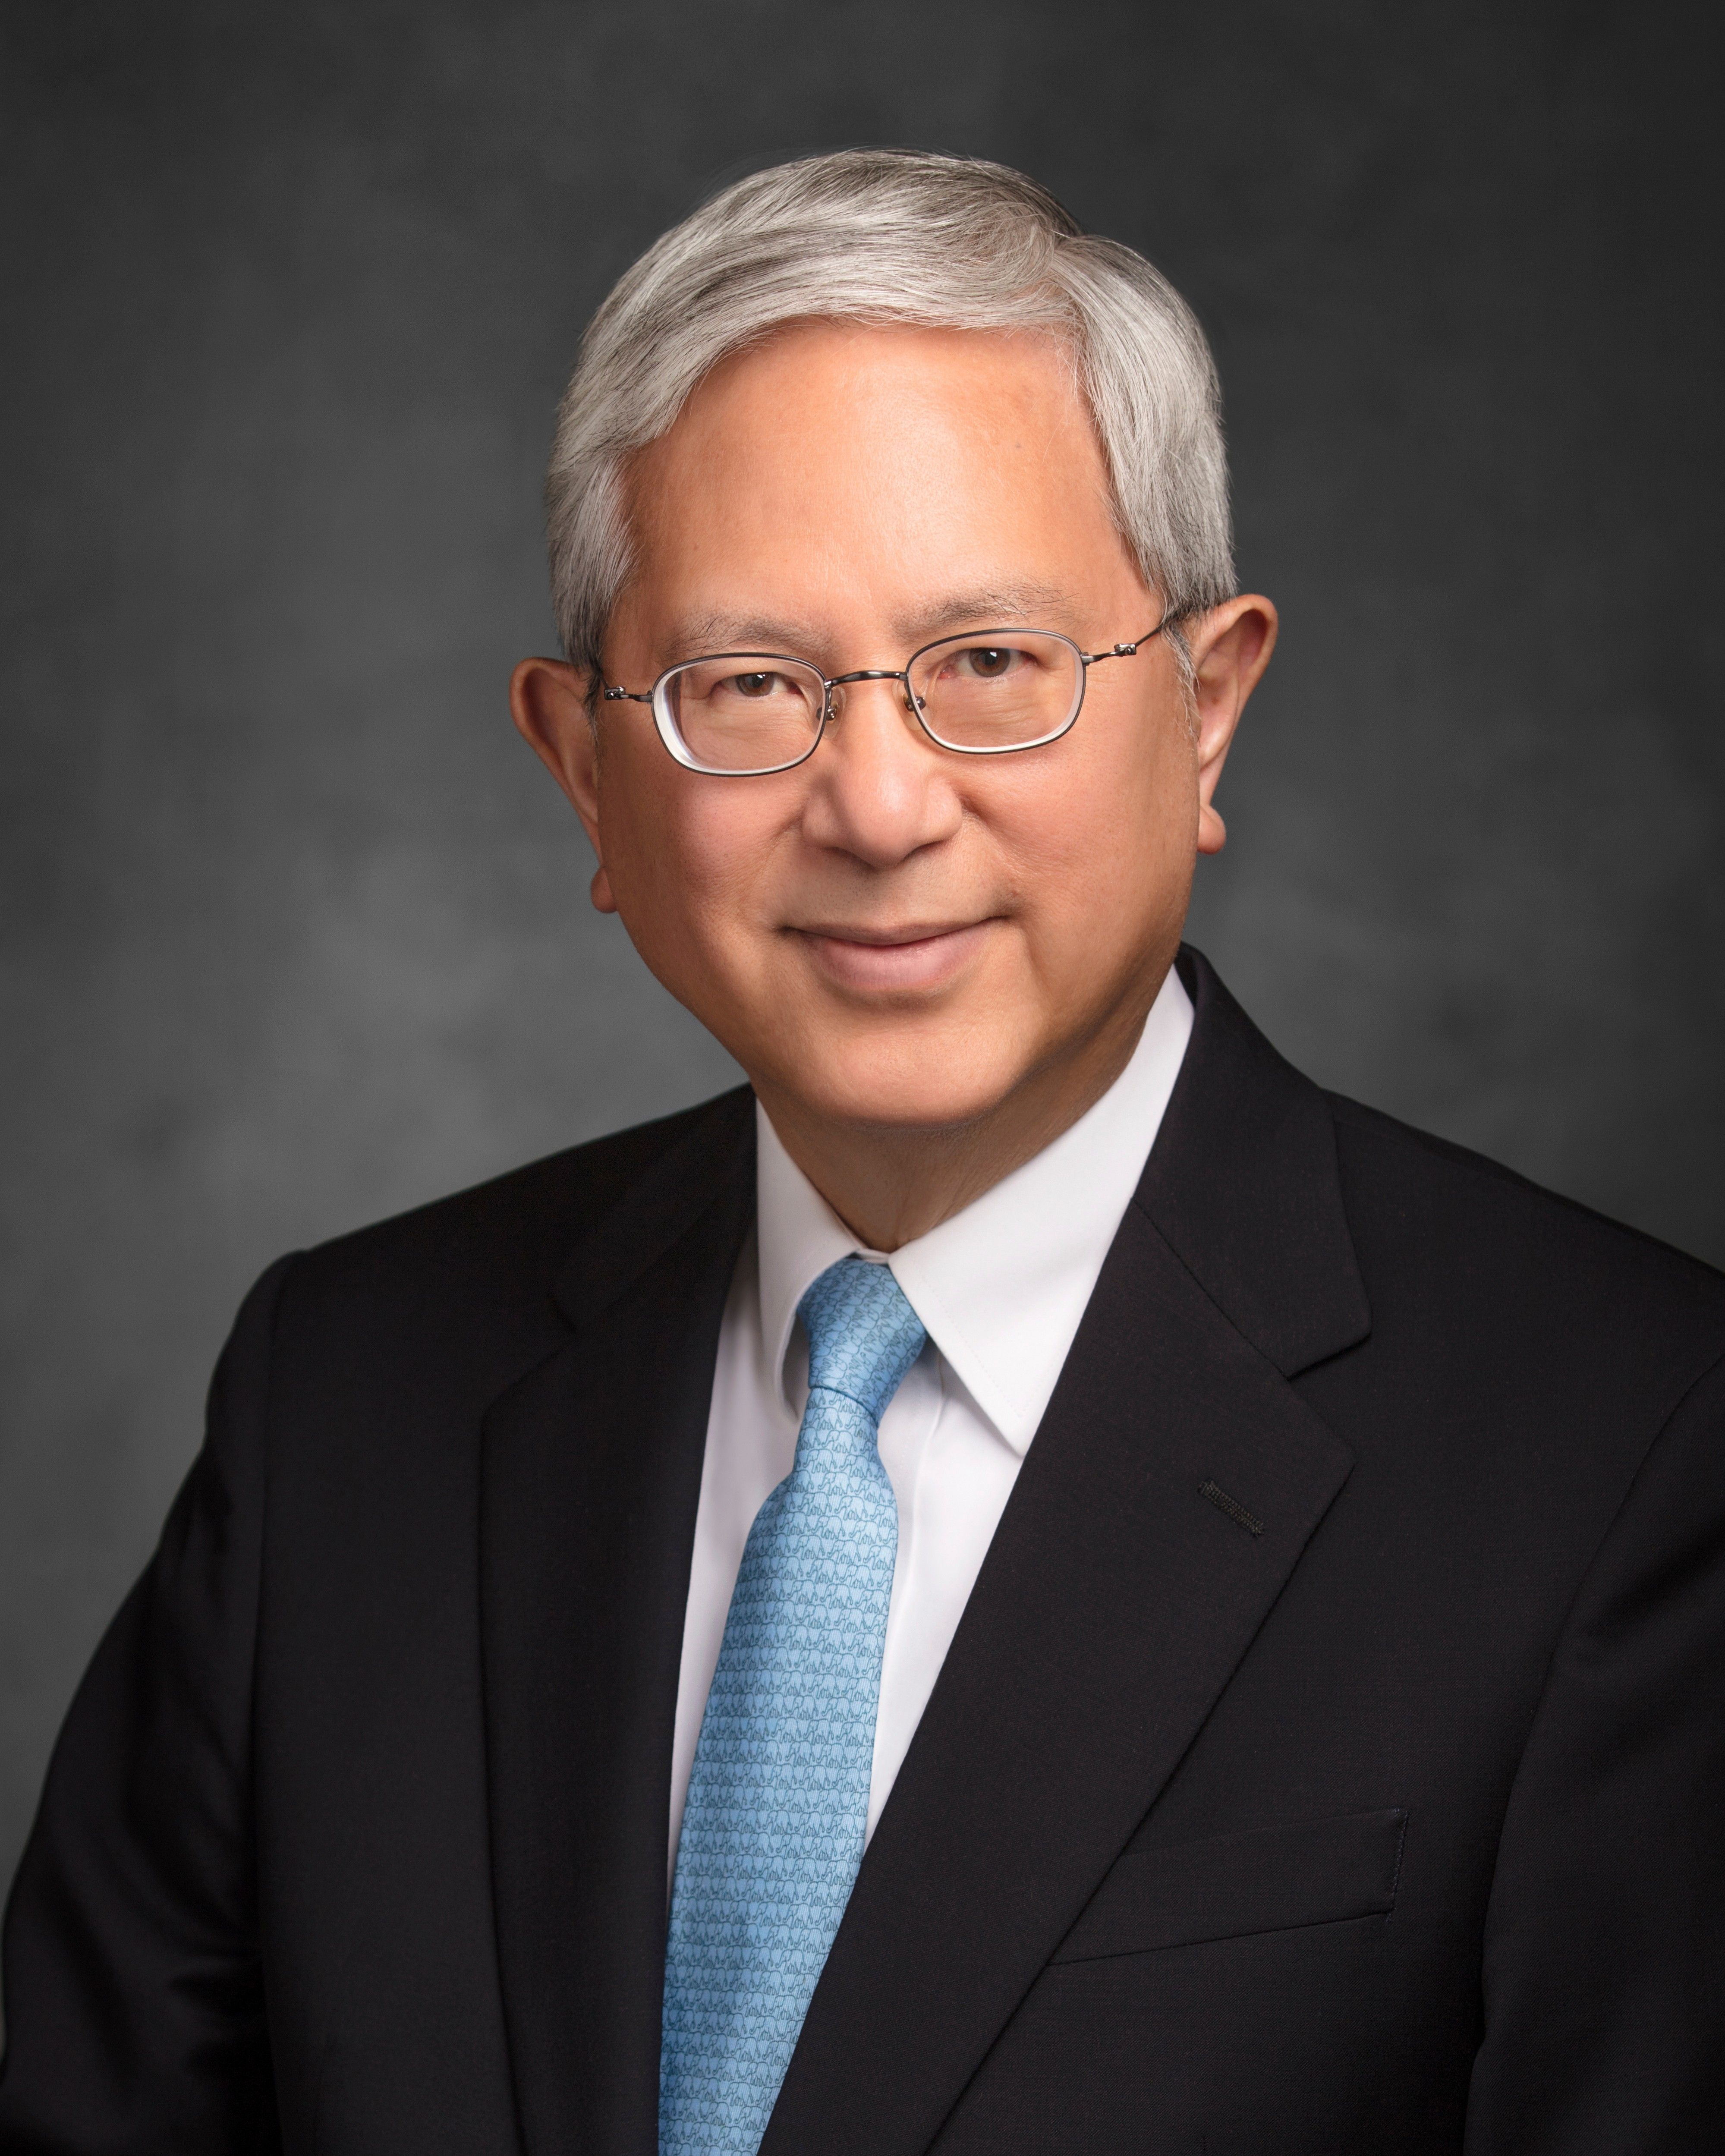 The official portrait of Gerrit W. Gong.